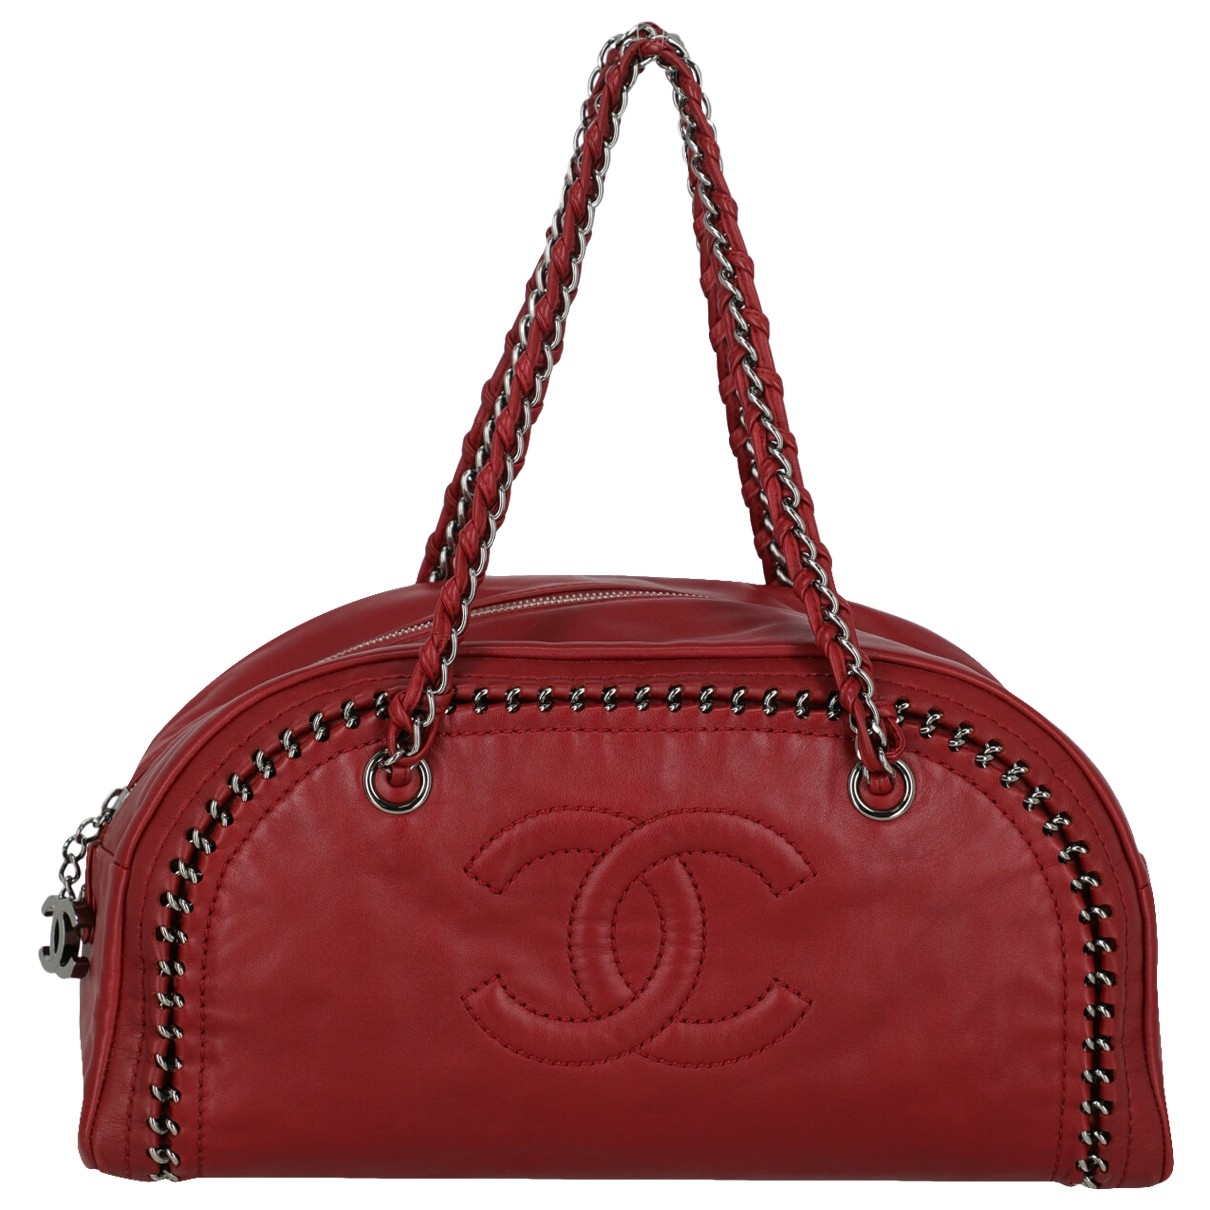 Chanel \N Red Leather handbag for Women \N